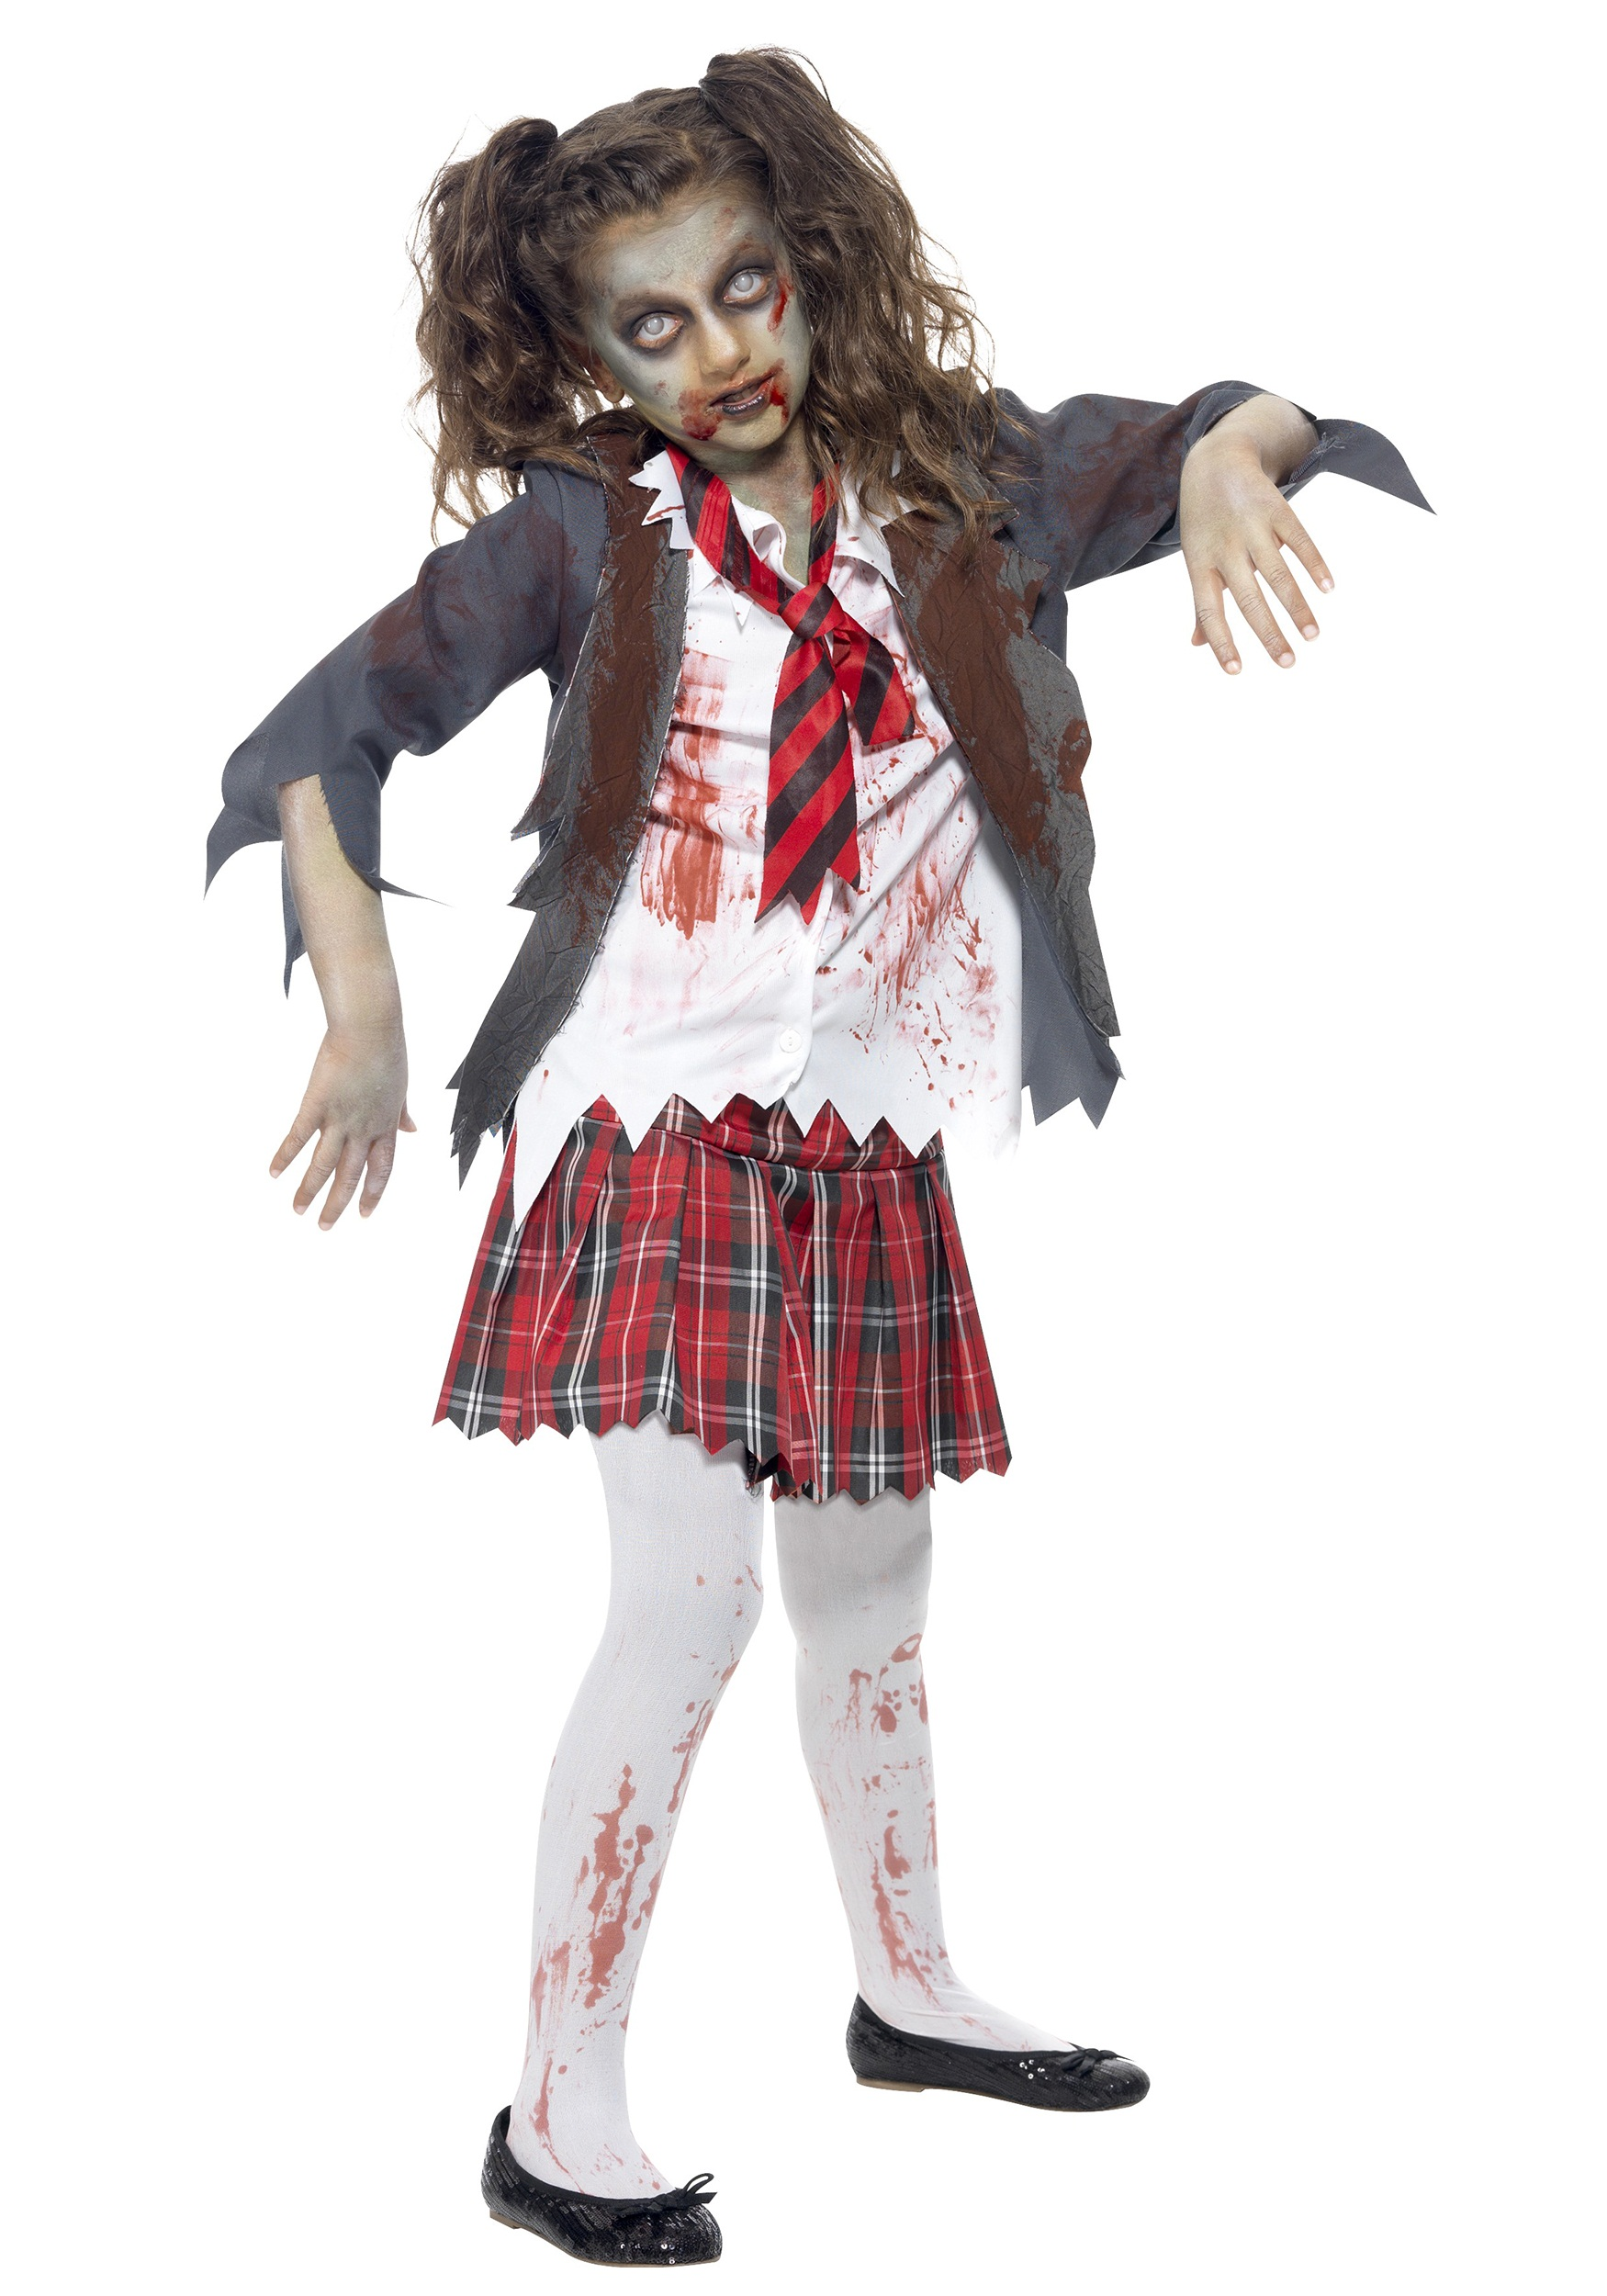 sc 1 st  Halloween Costumes : halloween girls costume  - Germanpascual.Com